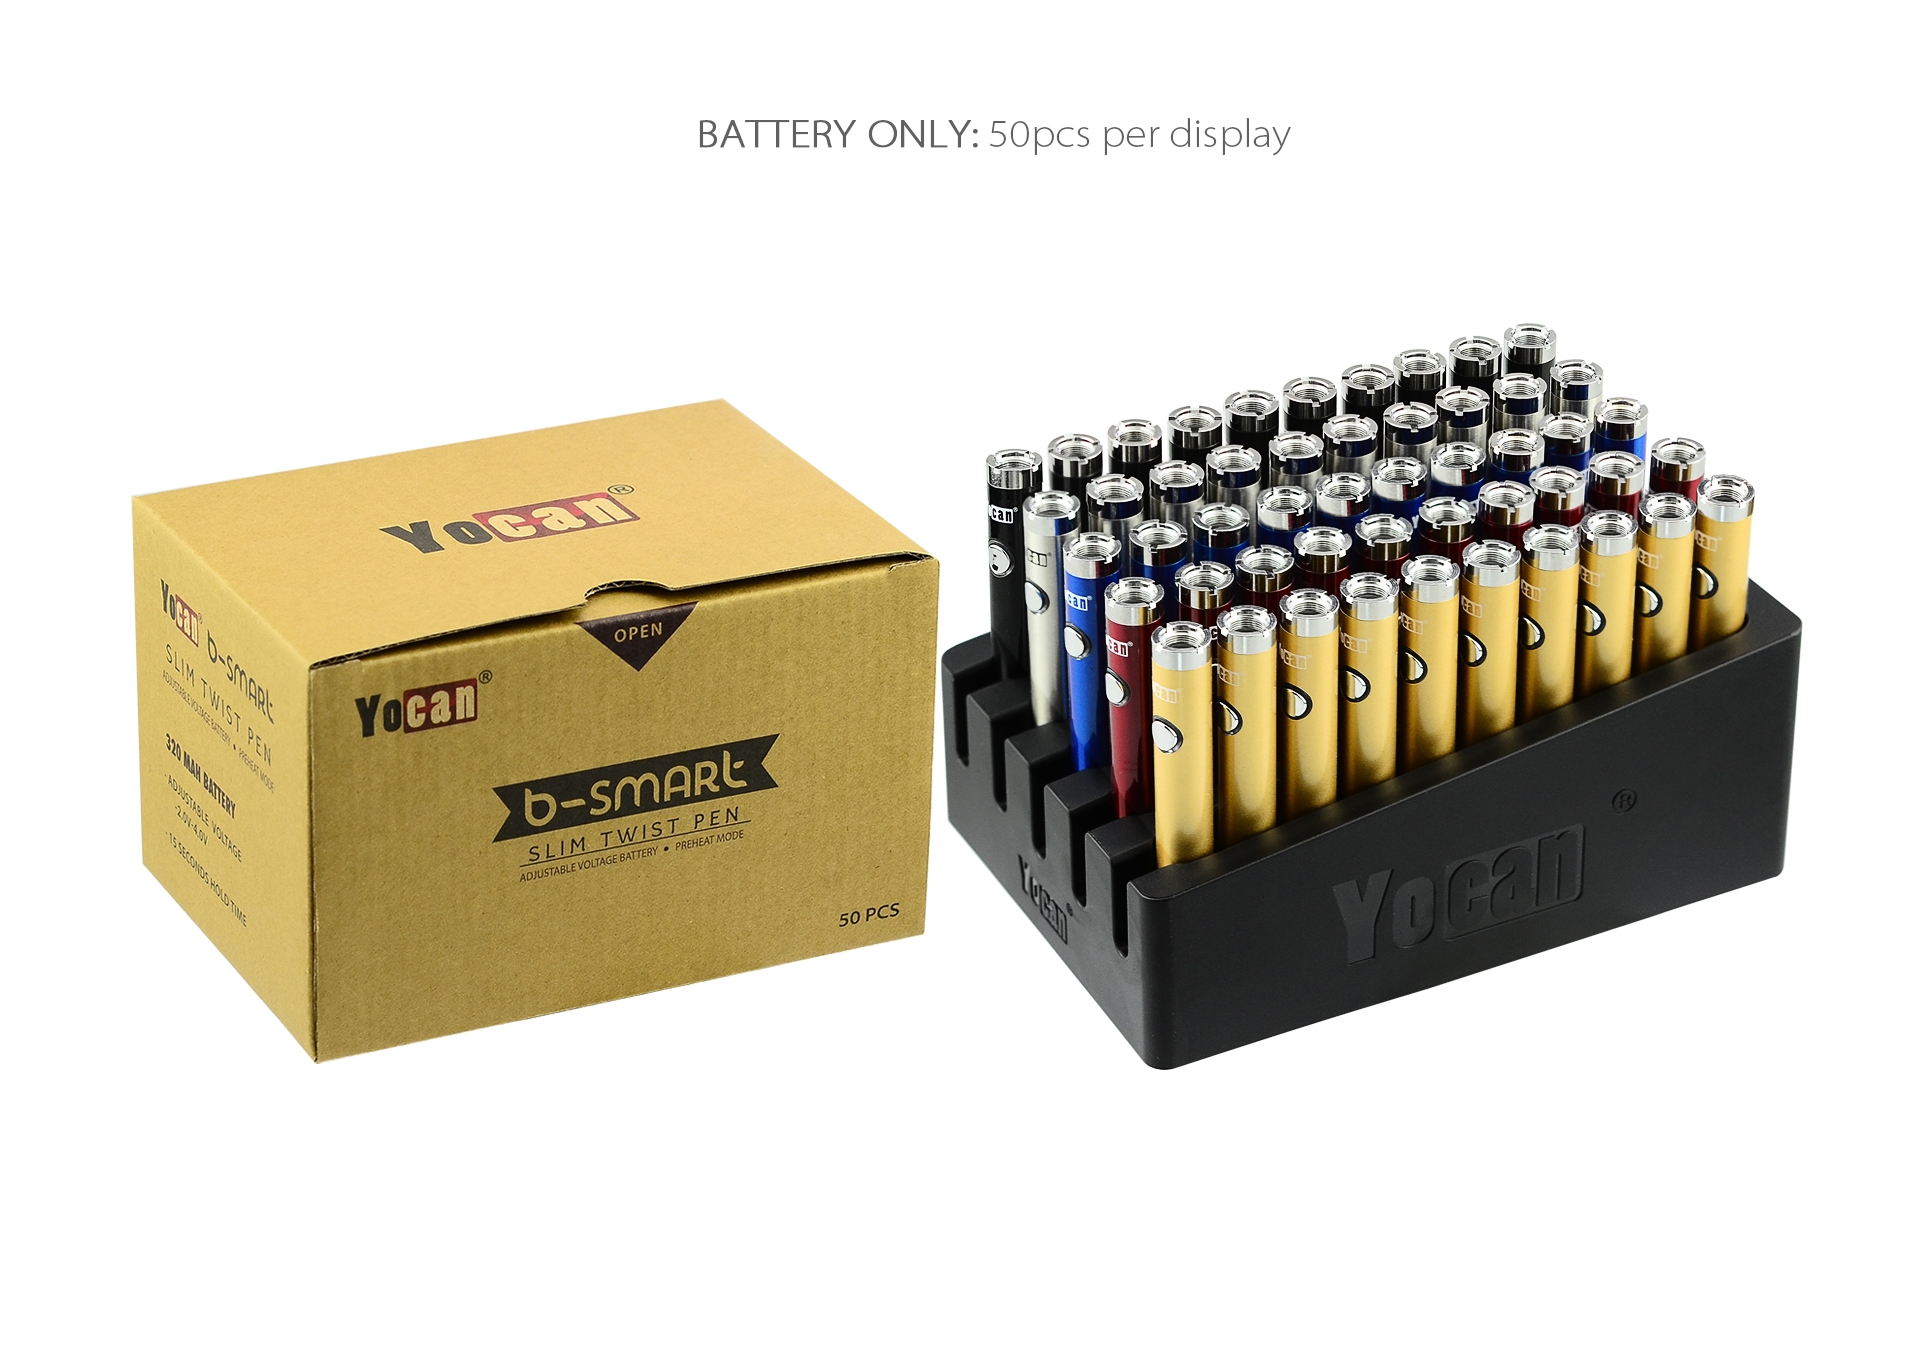 Yocan B-smart Twist VV Slim Vape Pen Battery package.